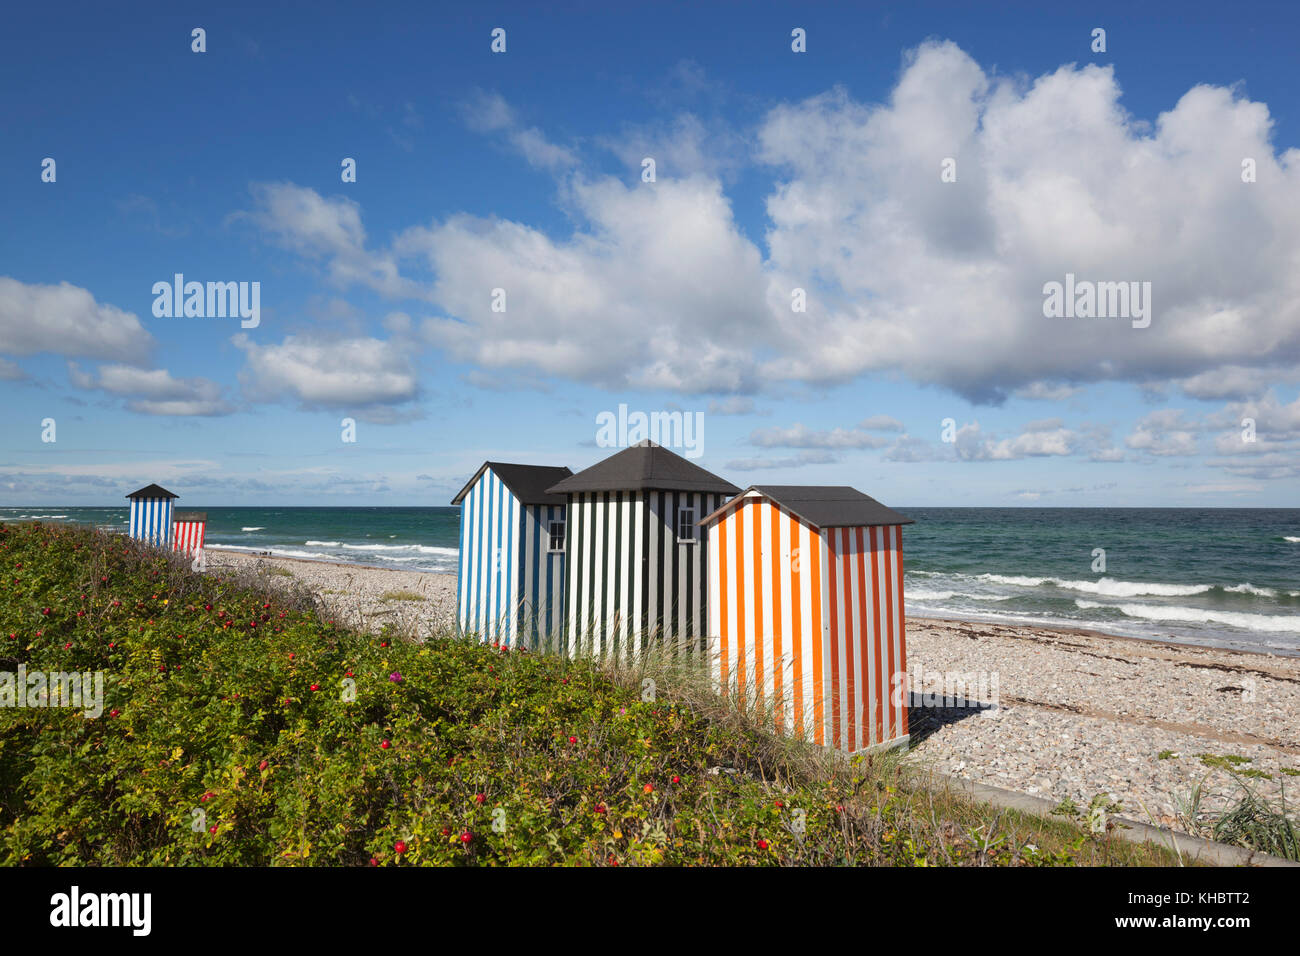 Colourful beach huts on pebble beach with blue sea and sky with clouds, Rageleje, Kattegat Coast, Zealand, Denmark, - Stock Image